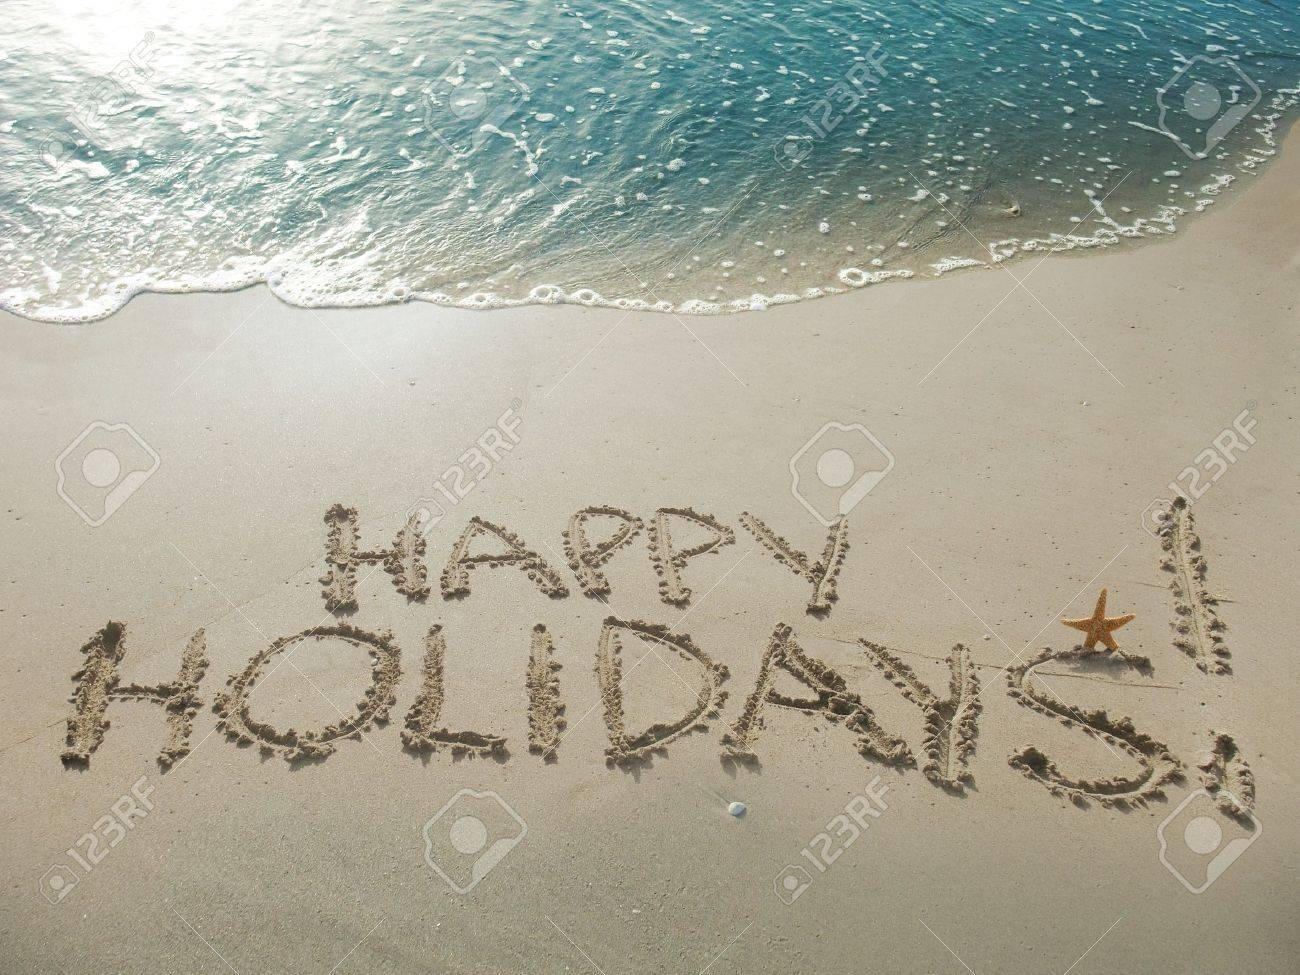 http://previews.123rf.com/images/pohod/pohod1209/pohod120900018/15381863-Happy-Holidays-written-in-sand-at-the-beach-Stock-Photo-holiday.jpg